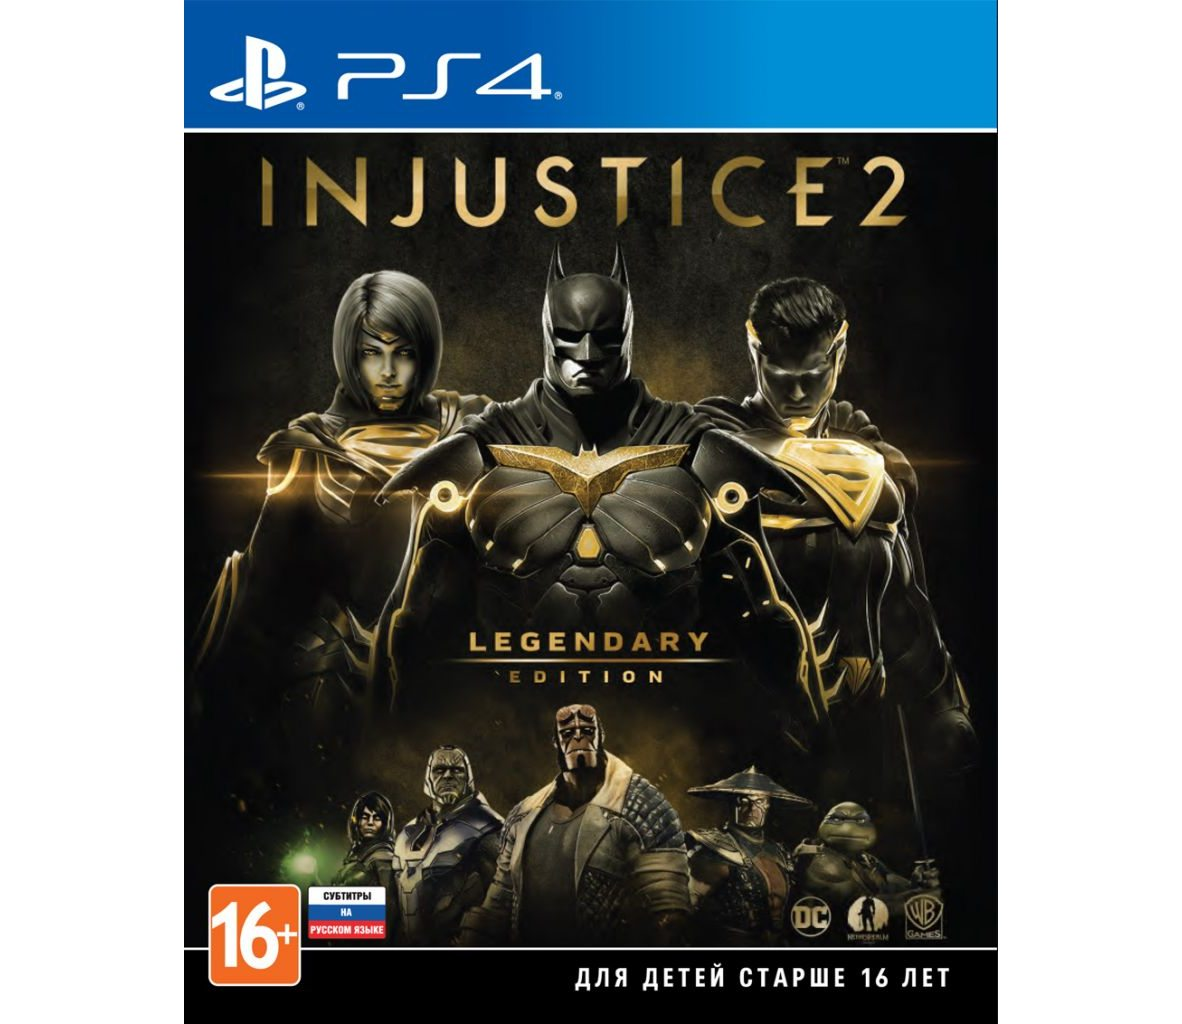 PS 4 Injustice 2. Legendary Edition PS 4